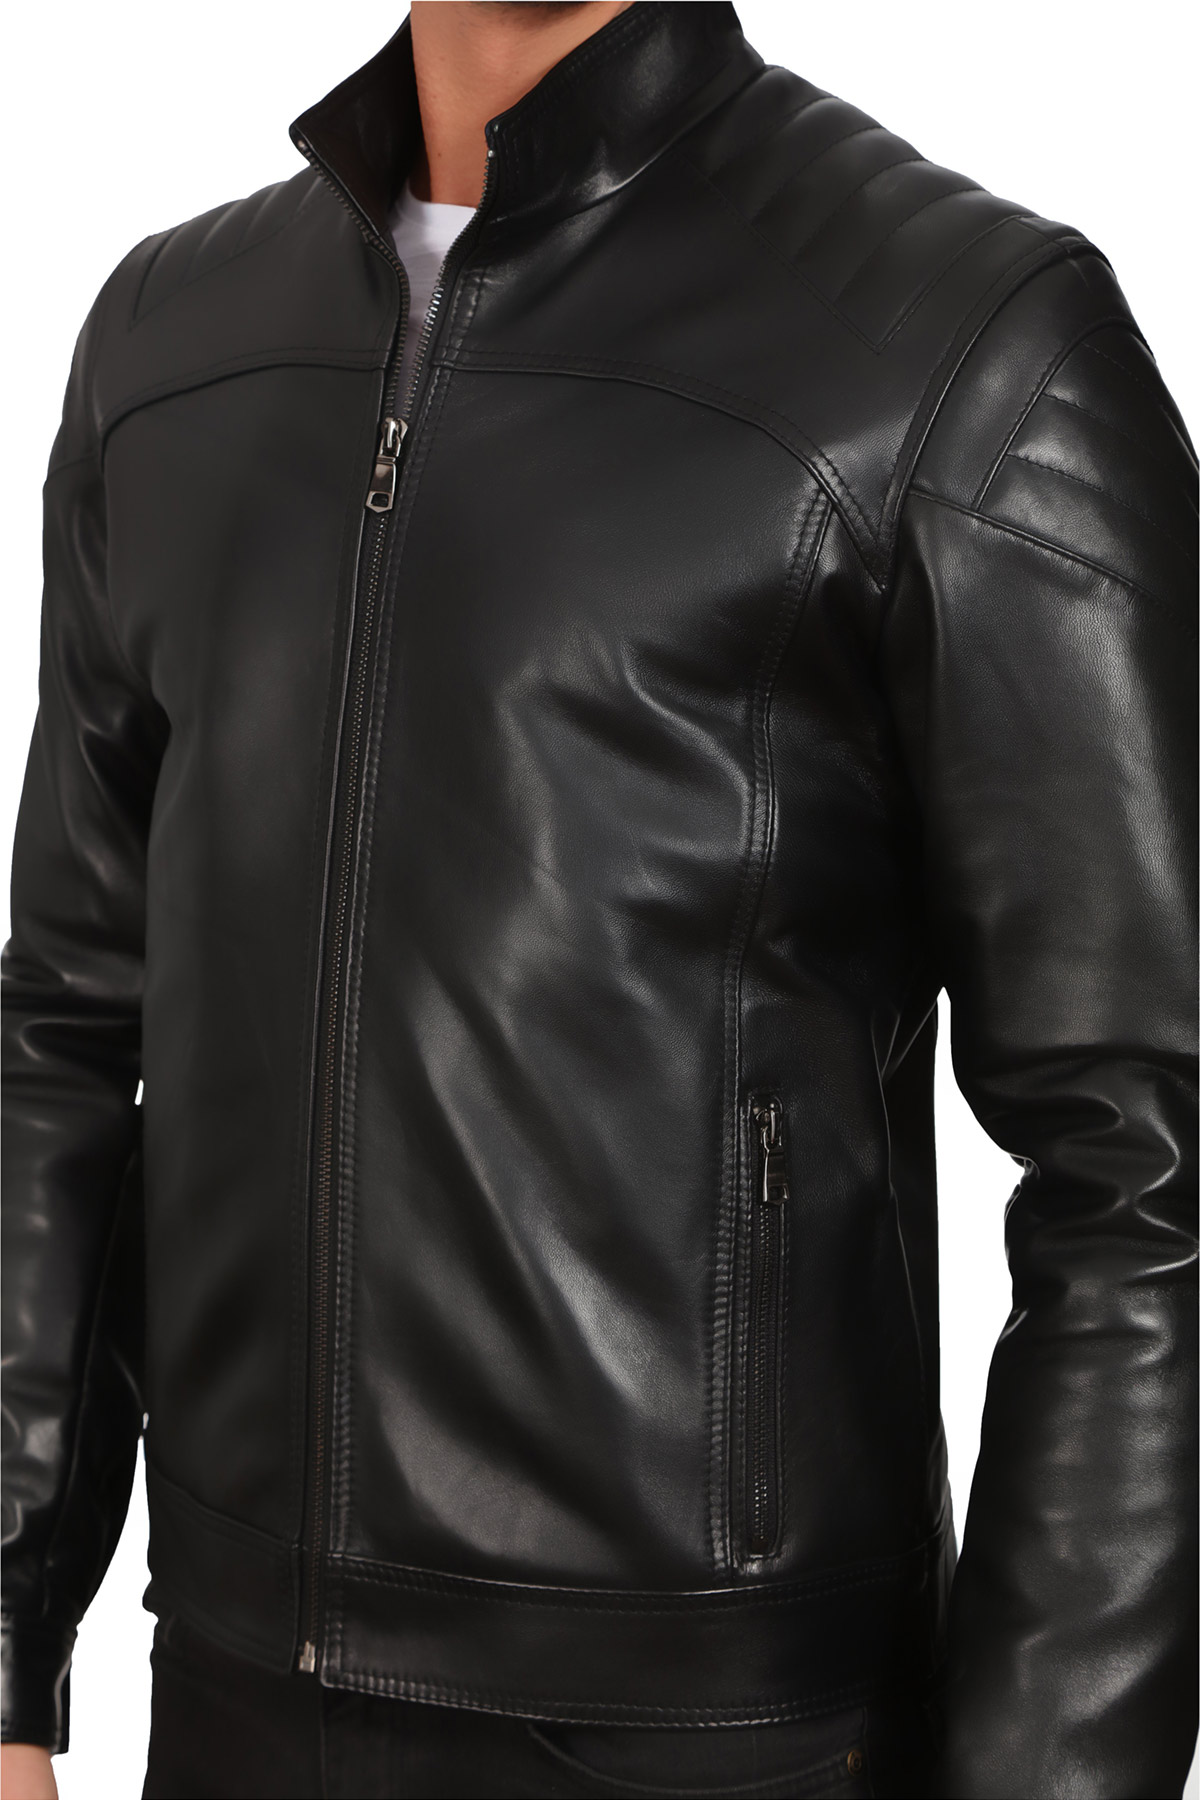 Reiss Mens Leather Jacket